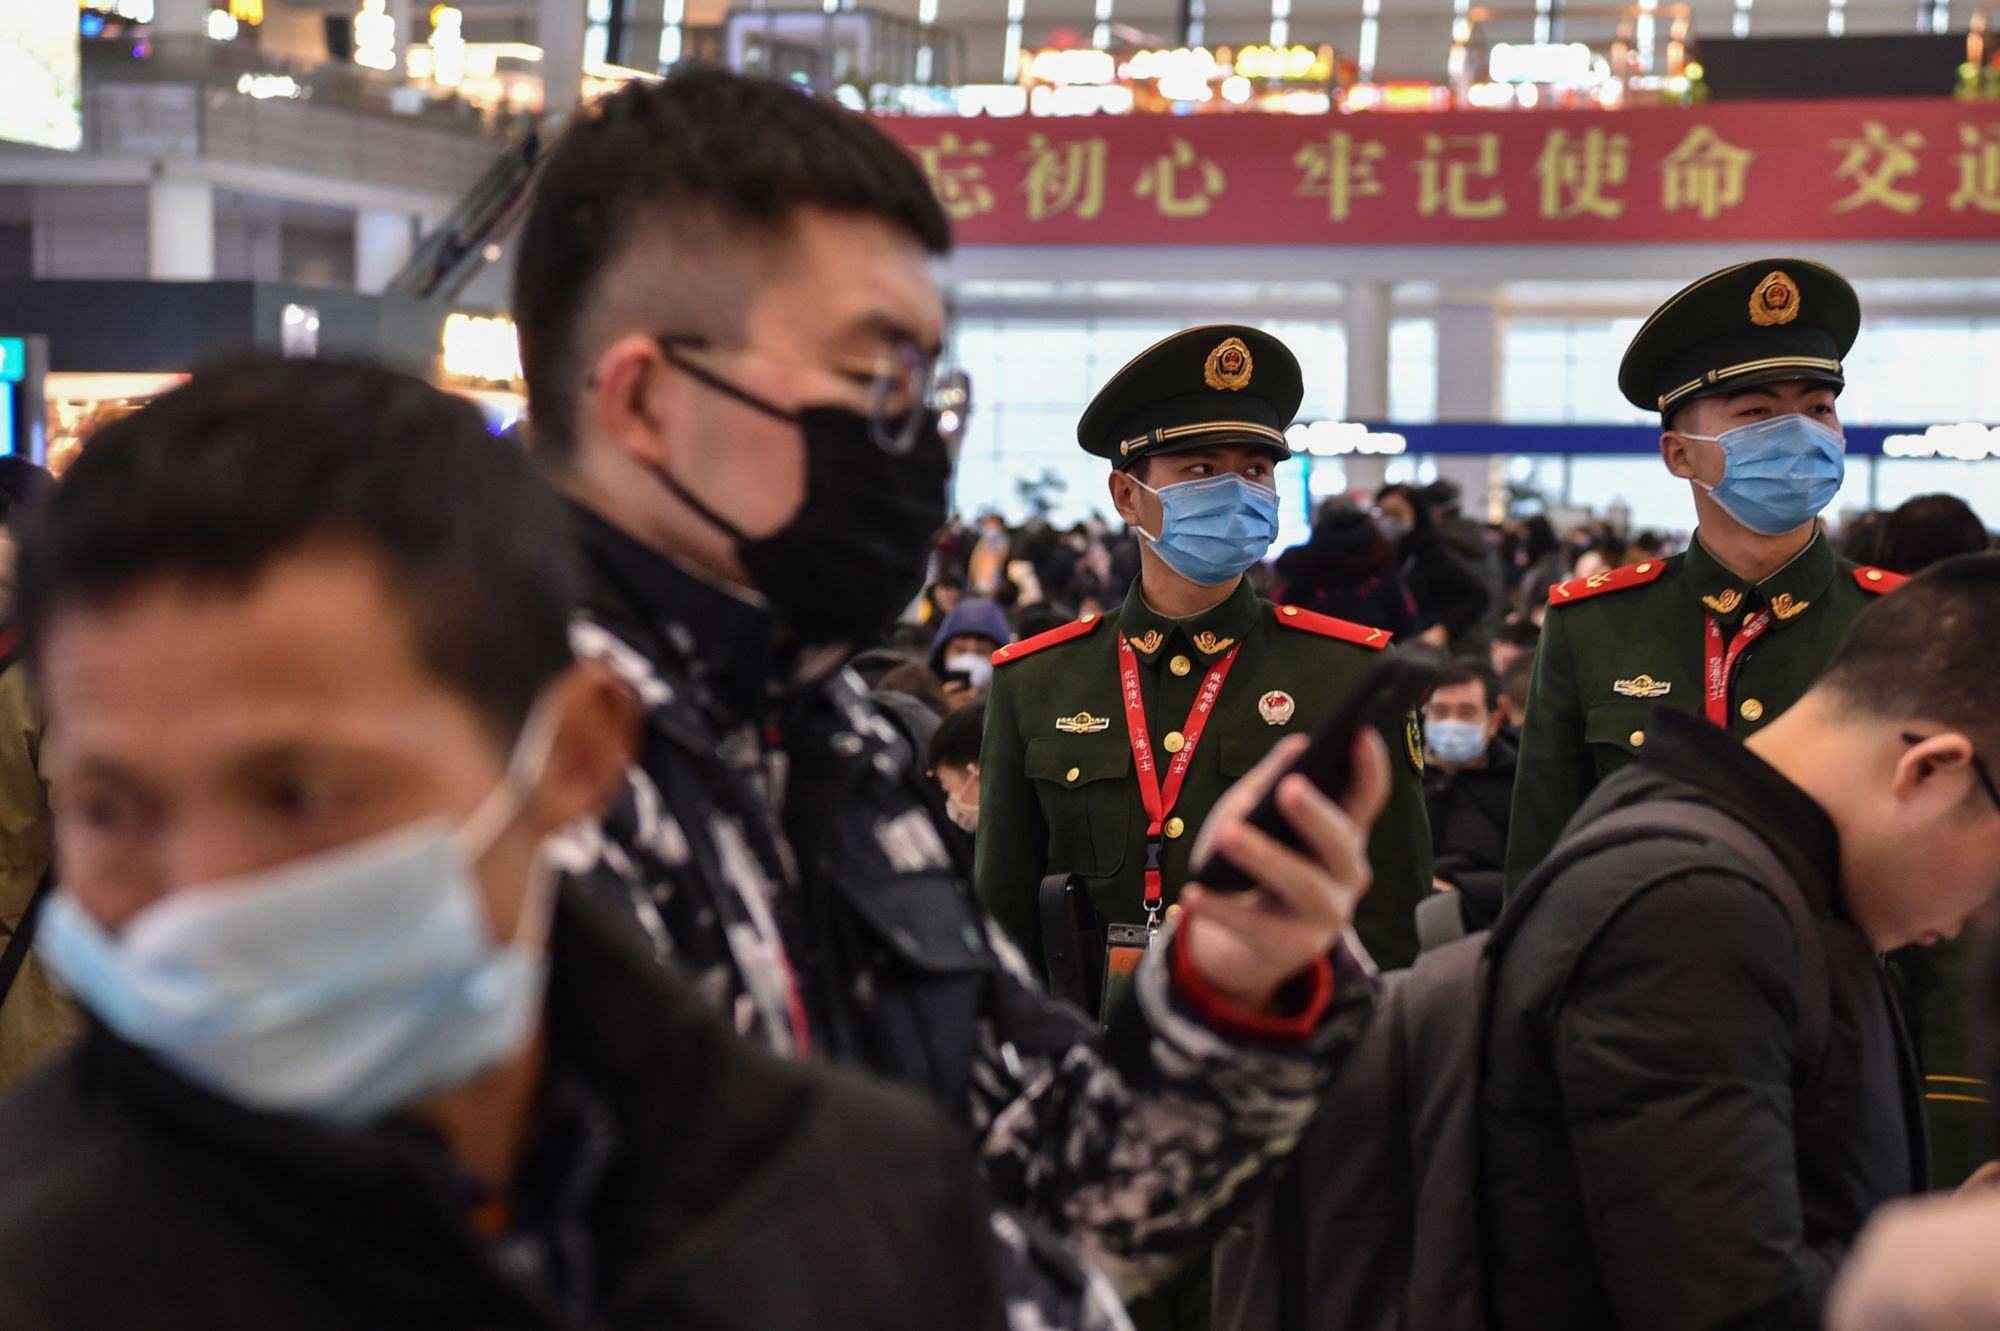 Chinese paramilitary police wearing masks stand guard while people wait for their train at Hongqioa station as they head home for the Lunar New Year in Shanghai on Thursday.  | AFP-JIJI